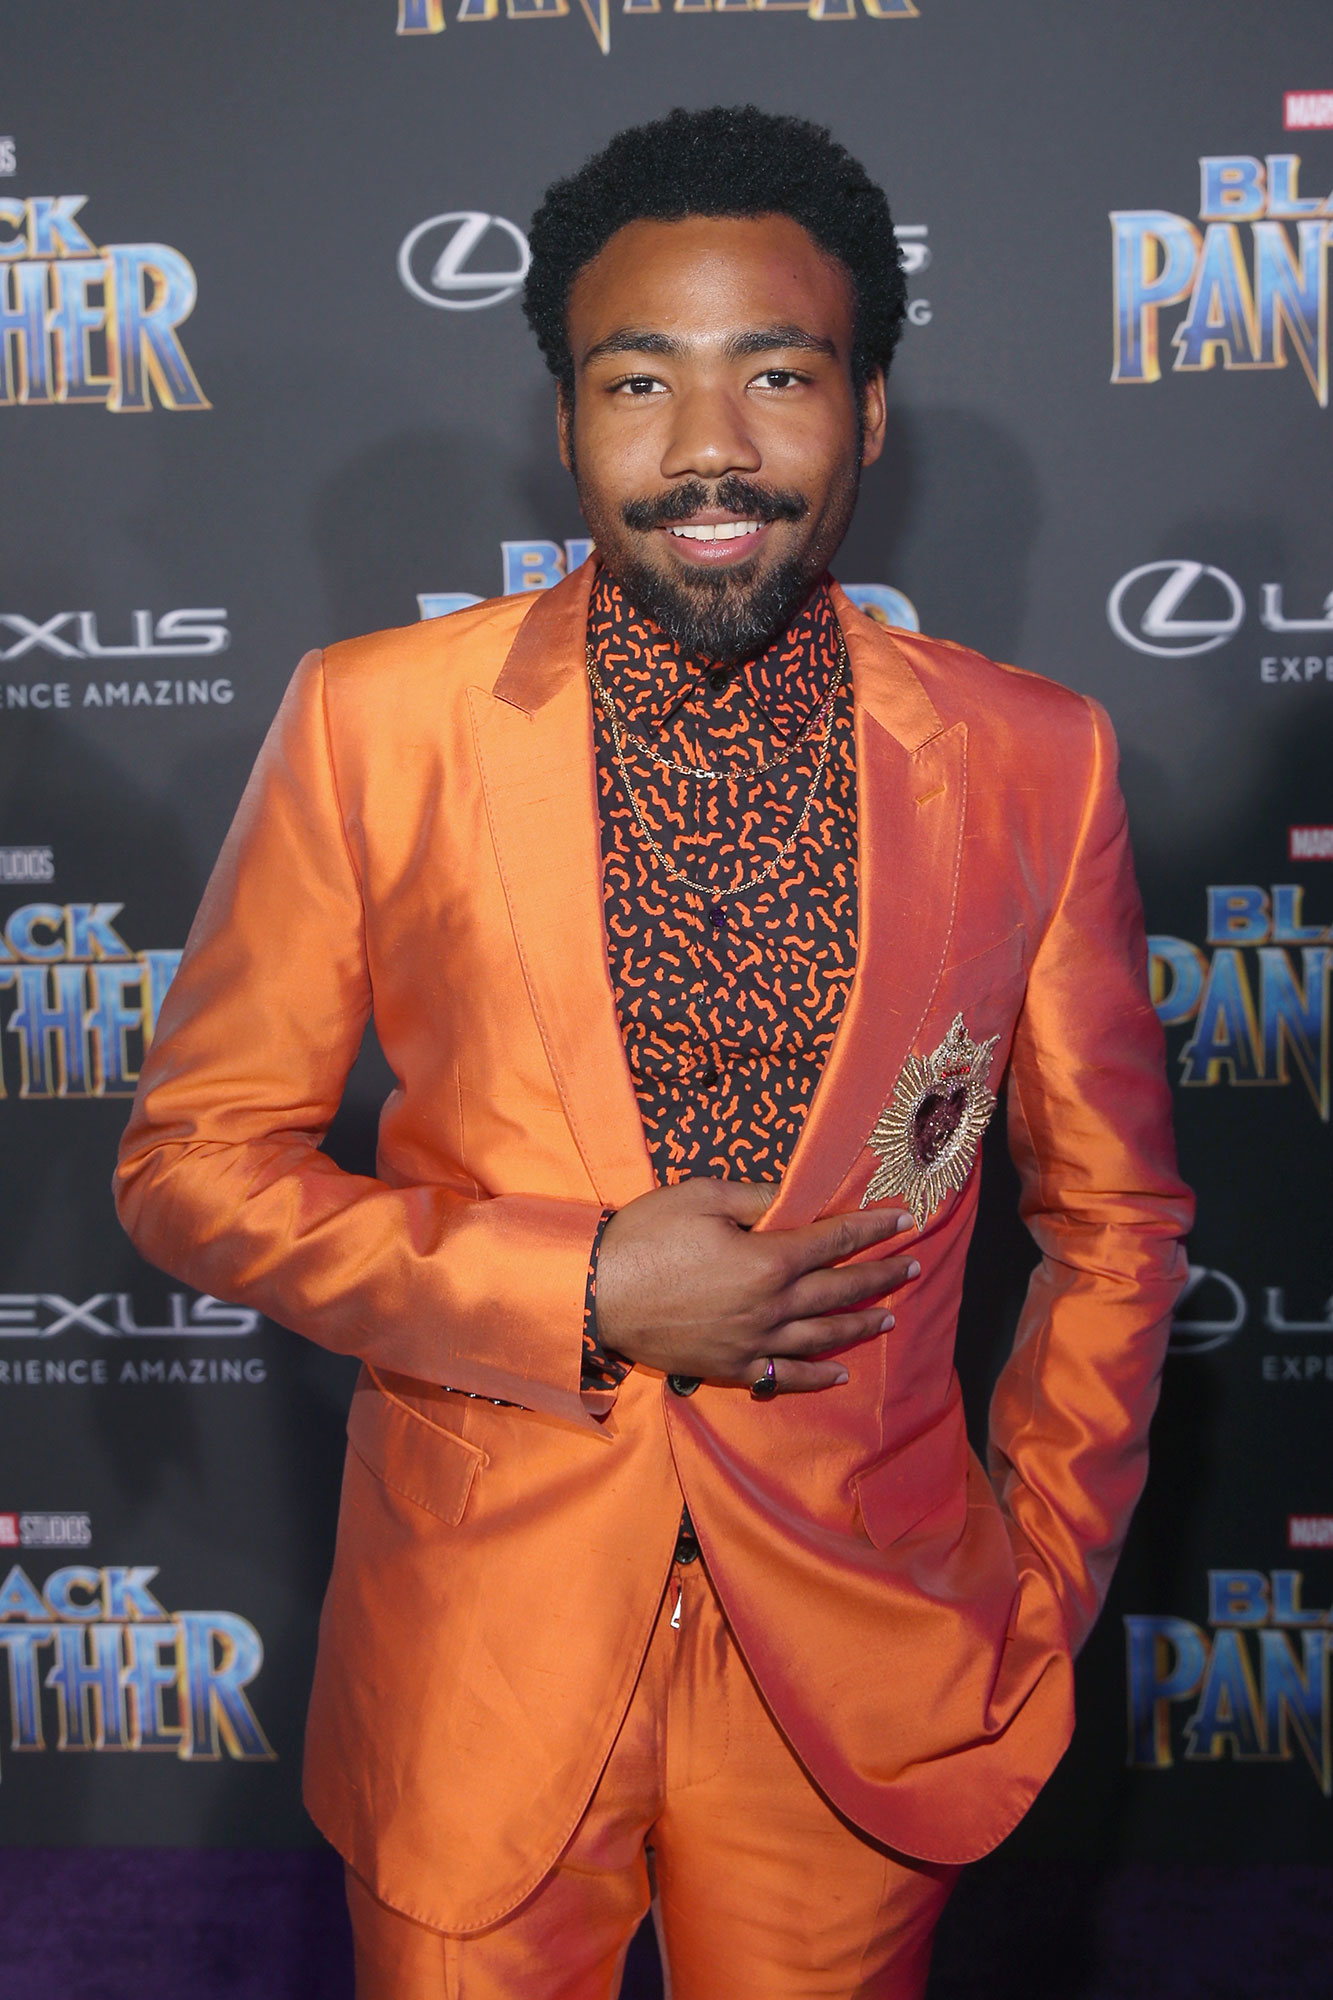 Donald Glover - Us confirmed in October 2016 that the Atlanta actor and his then-unknown partner, later identified only as Michelle , had quietly welcomed a son . Glover later revealed the little boy's name: Legend.